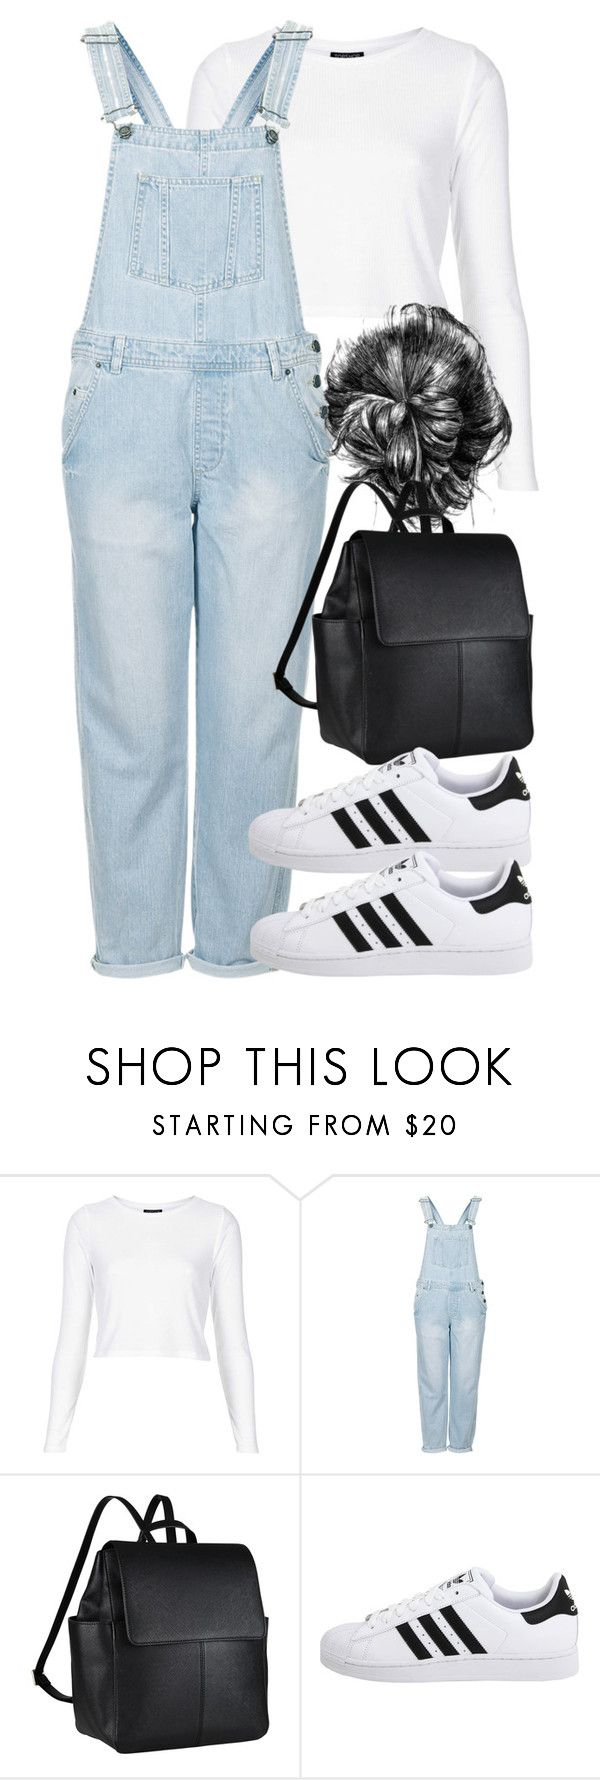 """""""Untitled #3673"""" by wallenbergnikki ❤ liked on Polyvore featuring Topshop, John Lewis and adidas Originals"""